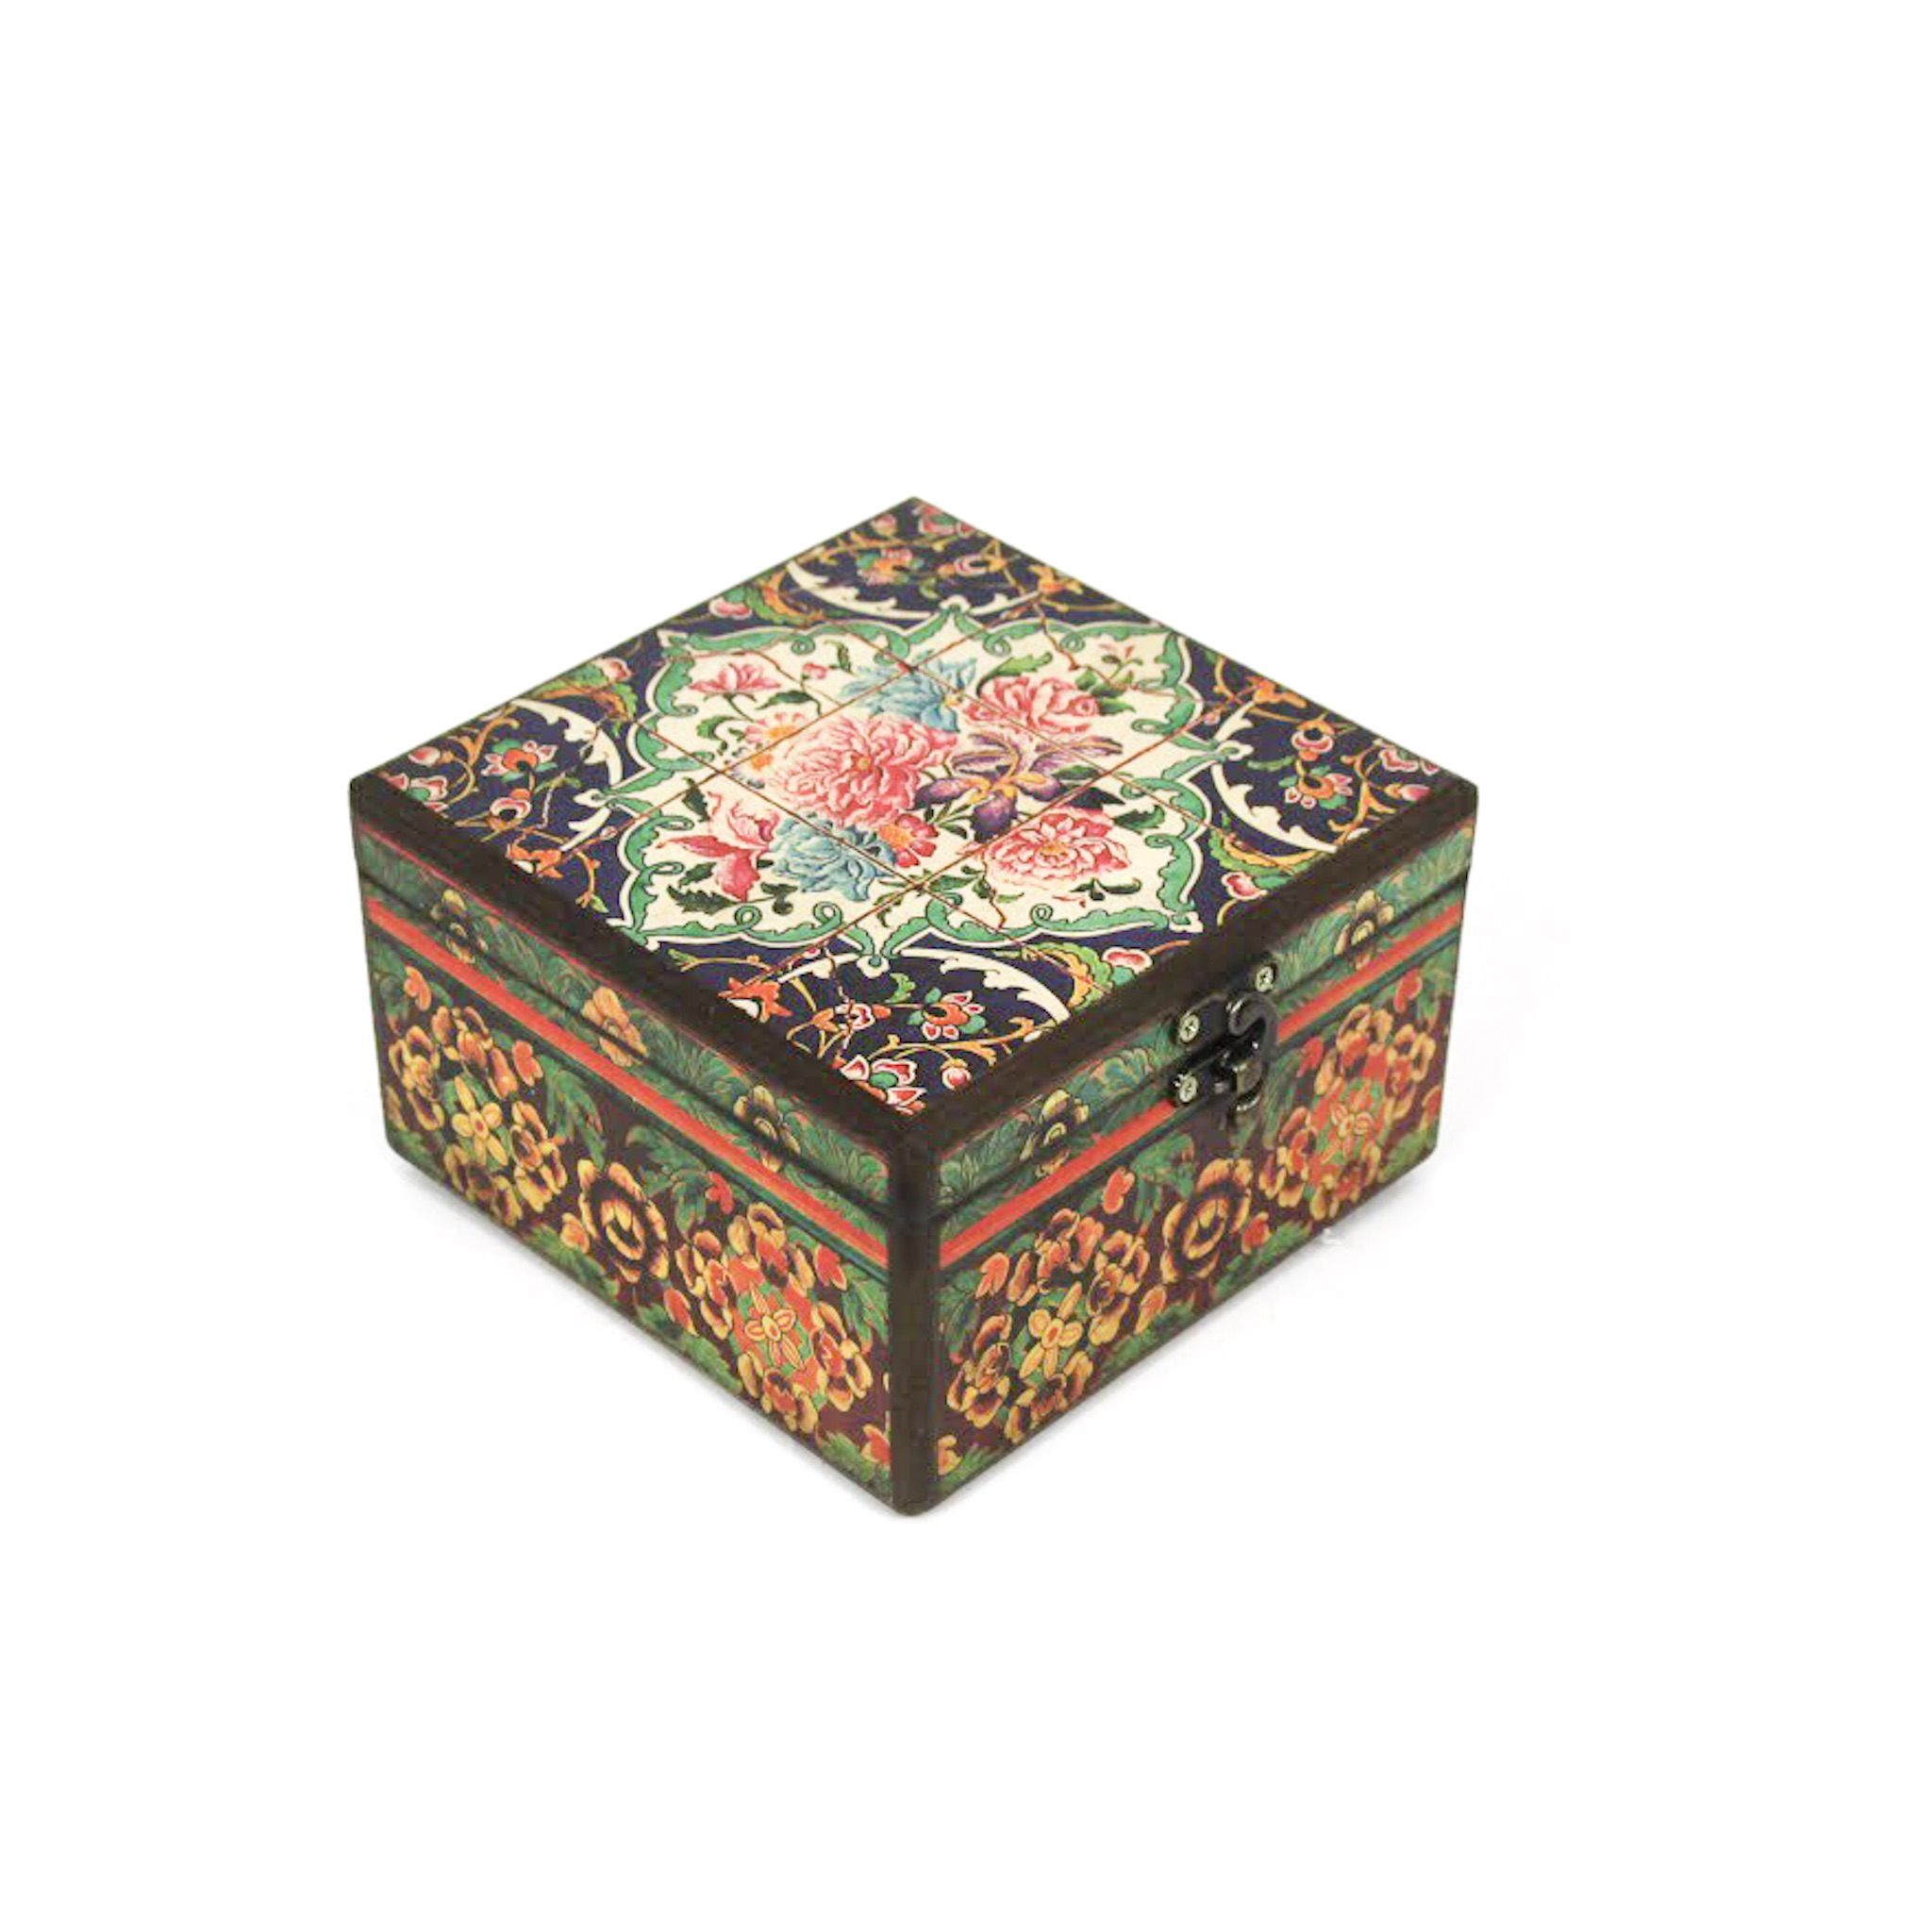 Wooden tea box with Iranian tile patterns code 03( available in 3 sizes)